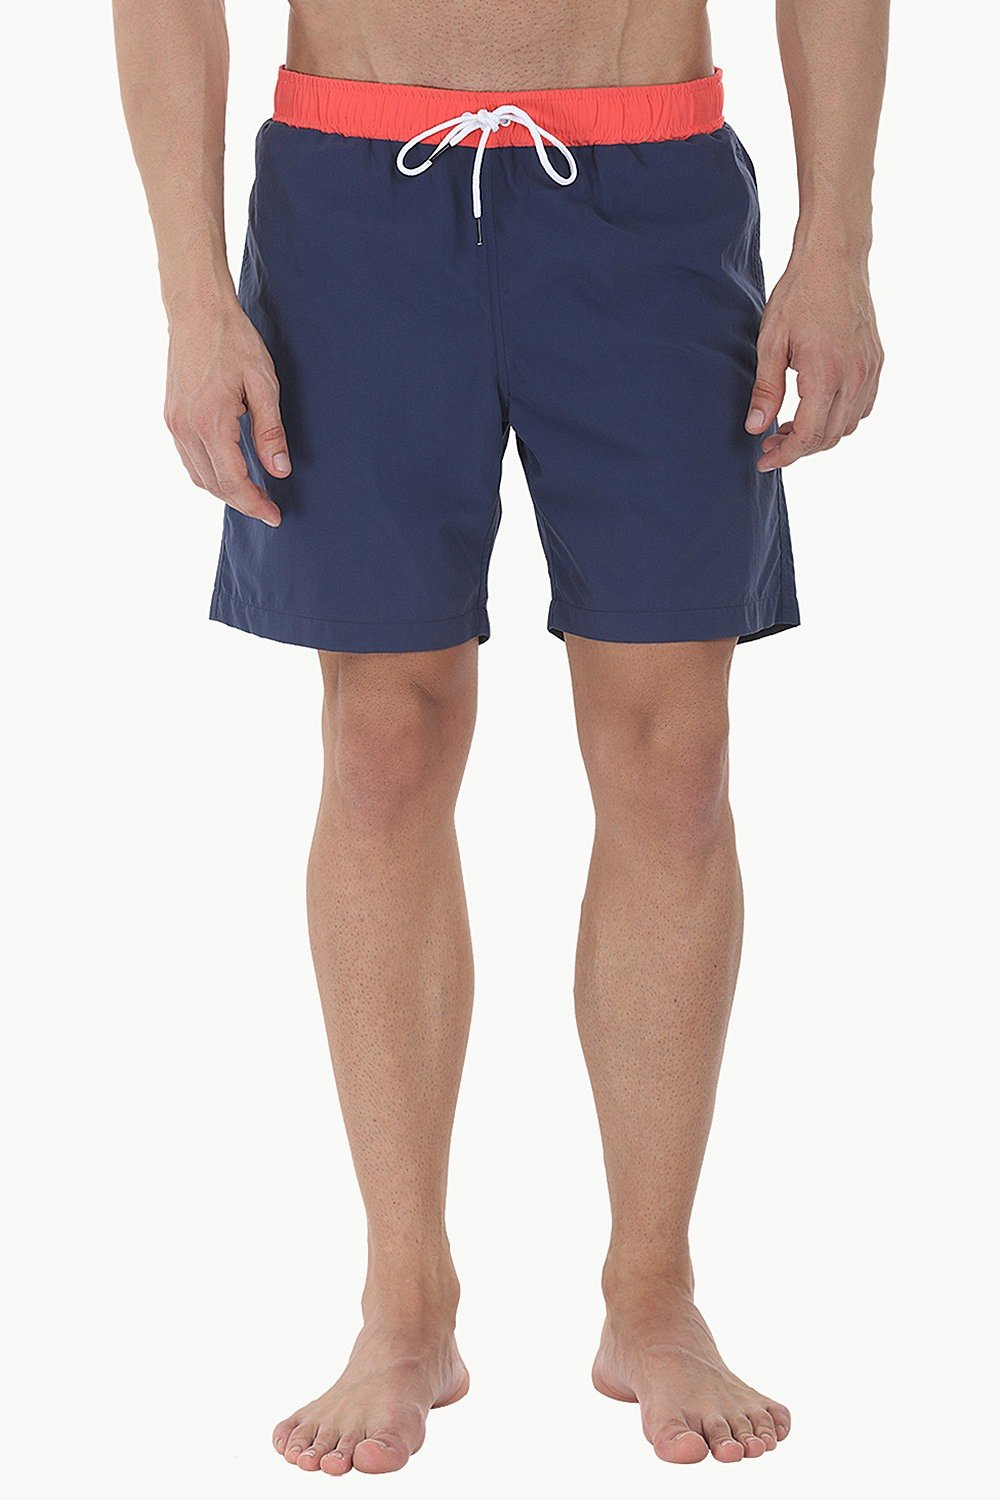 a74bbbe6af Buy Online Best Classic Solid Nylon Men's Swim ShortsNavy and Orange ...